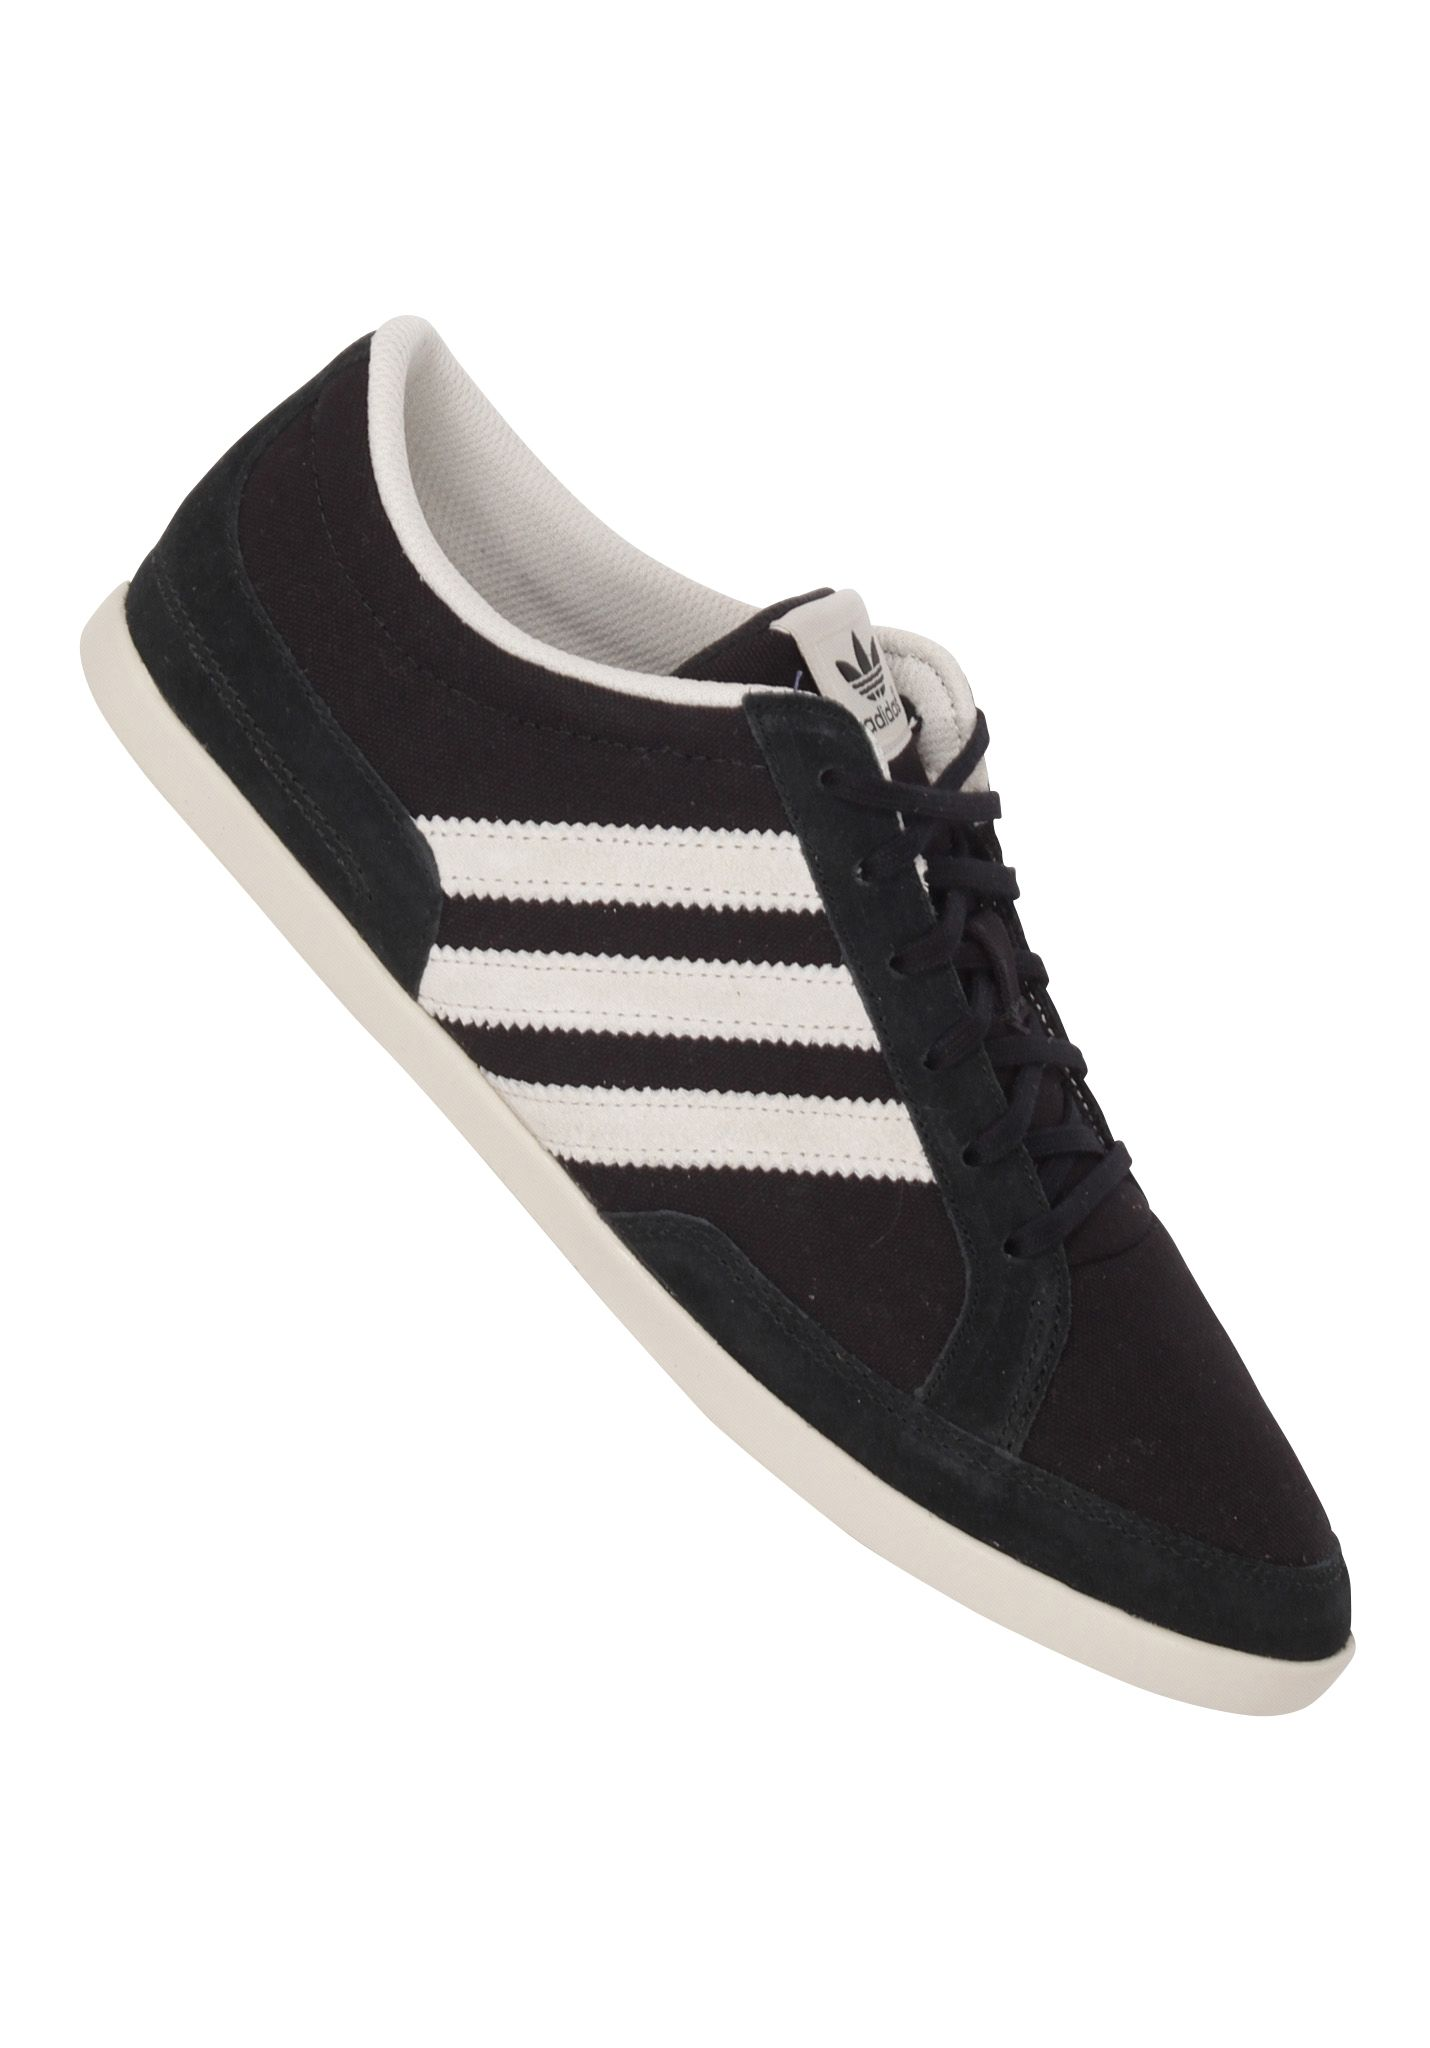 94aa80978b ADIDAS Adi -Up Low - Sneakers for Men - Black - Planet Sports